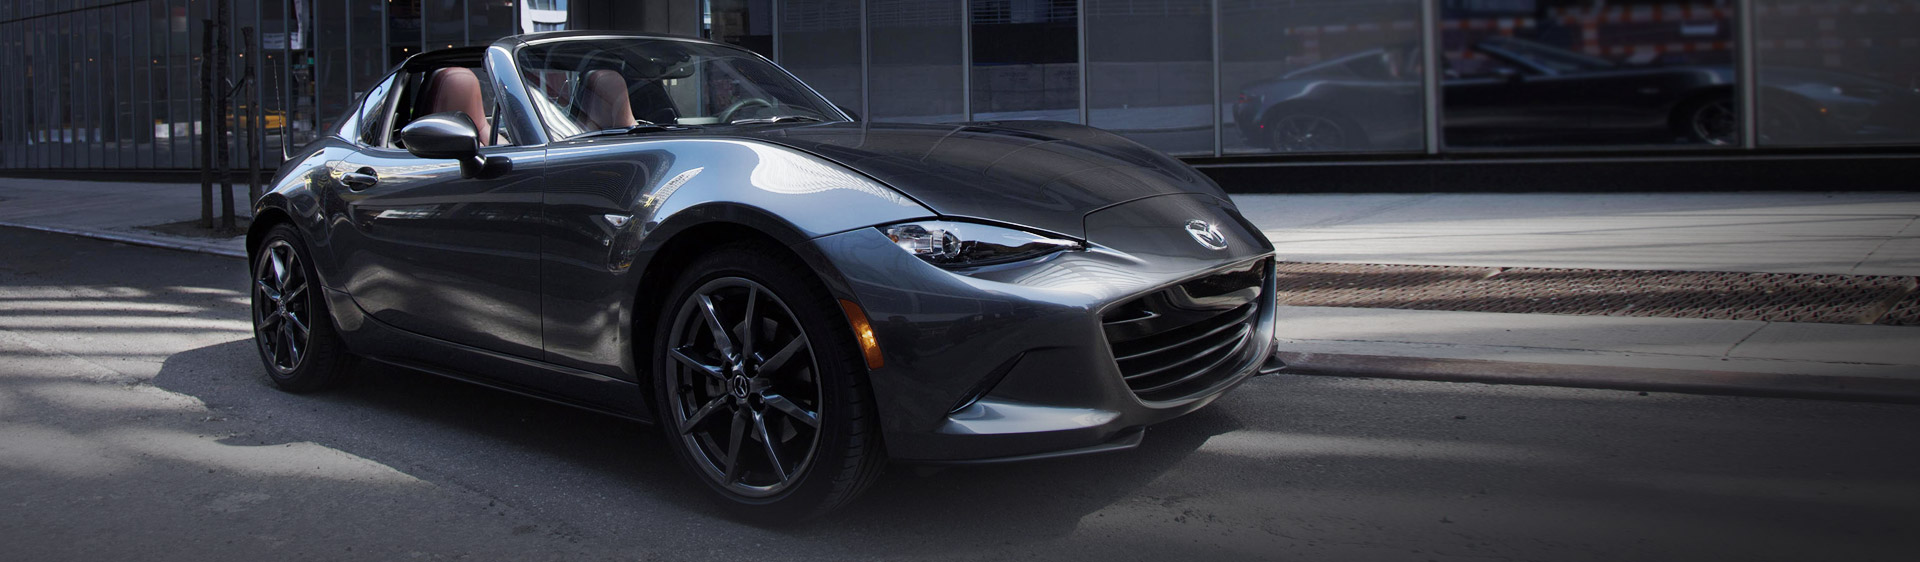 "<div class=""bottom-left""><h1 class=""text-white"">All New MX-5 RF</h1> <p class=""text-white"">Arriving in January 2017 </p> <div class=""button-container""><a href=""/models/new-mx-5-rf/"">Find Out More</a></div></div>"